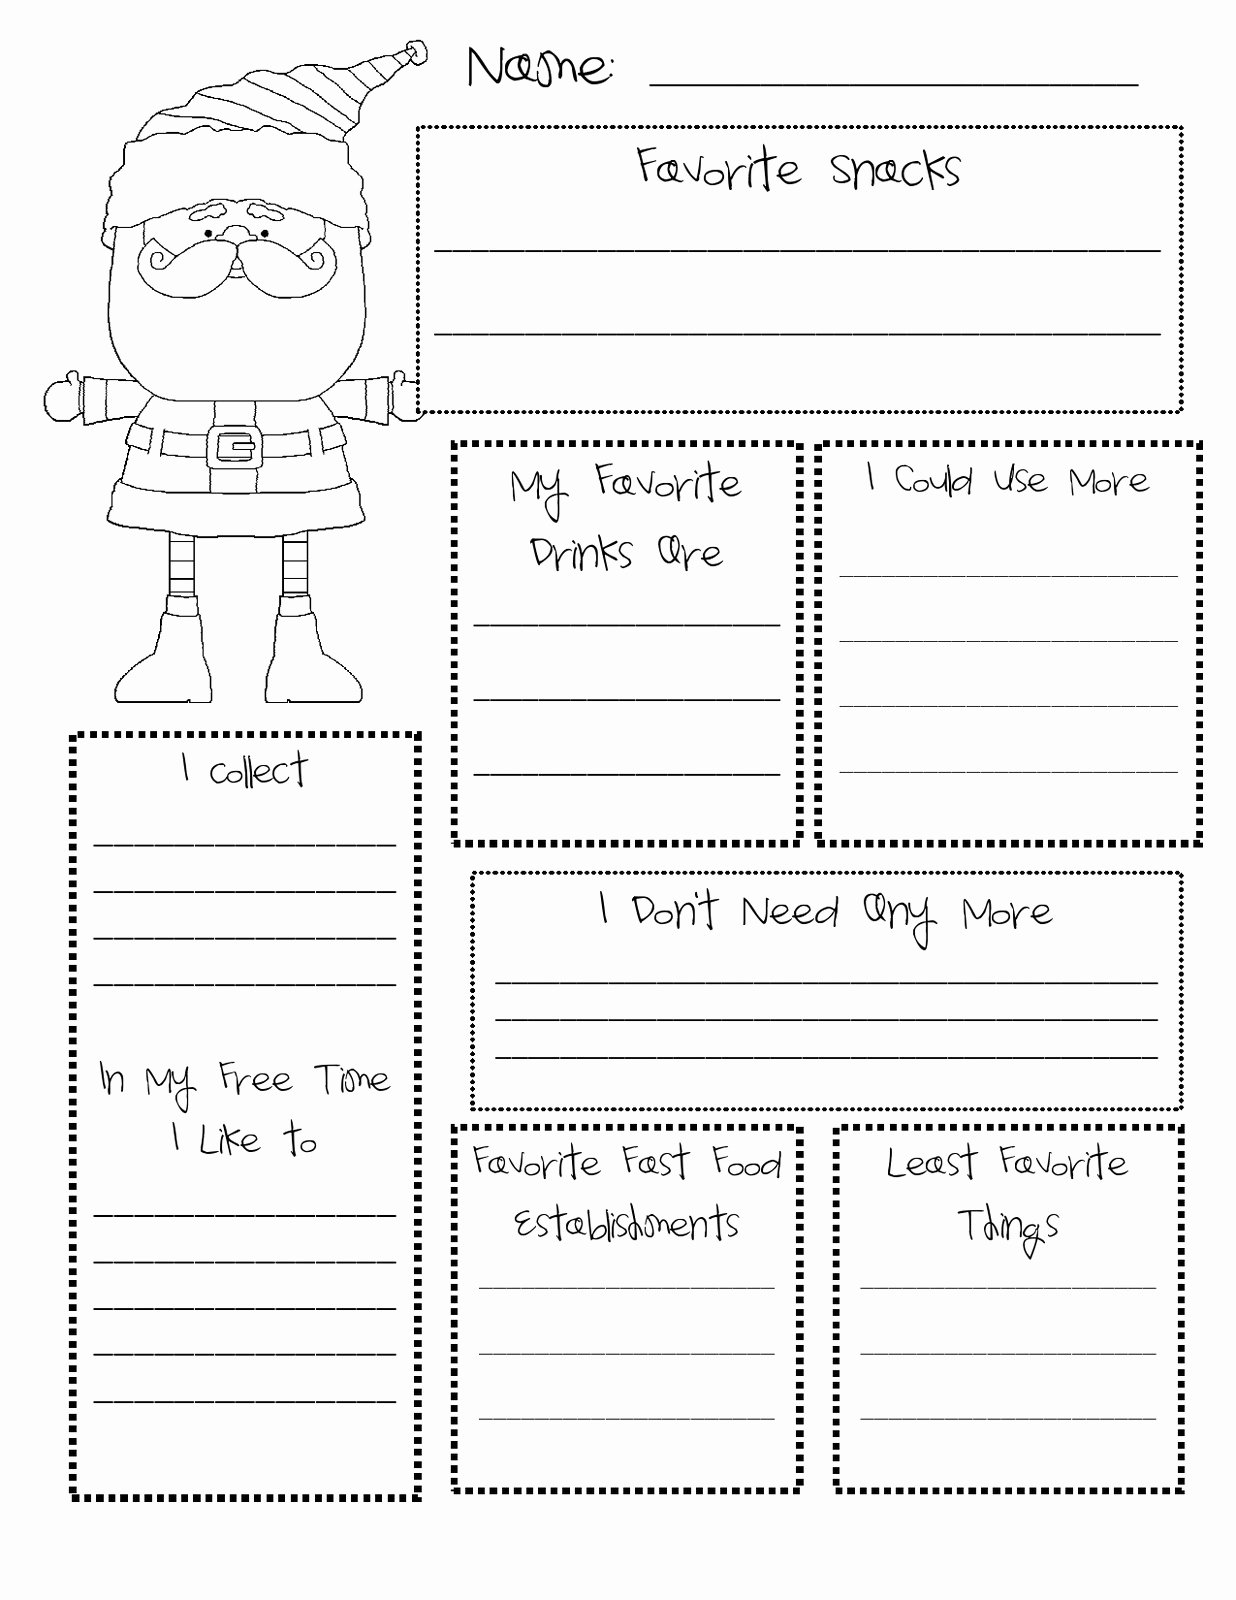 Gift Exchange Wish List Template Elegant What S the Buzz In First